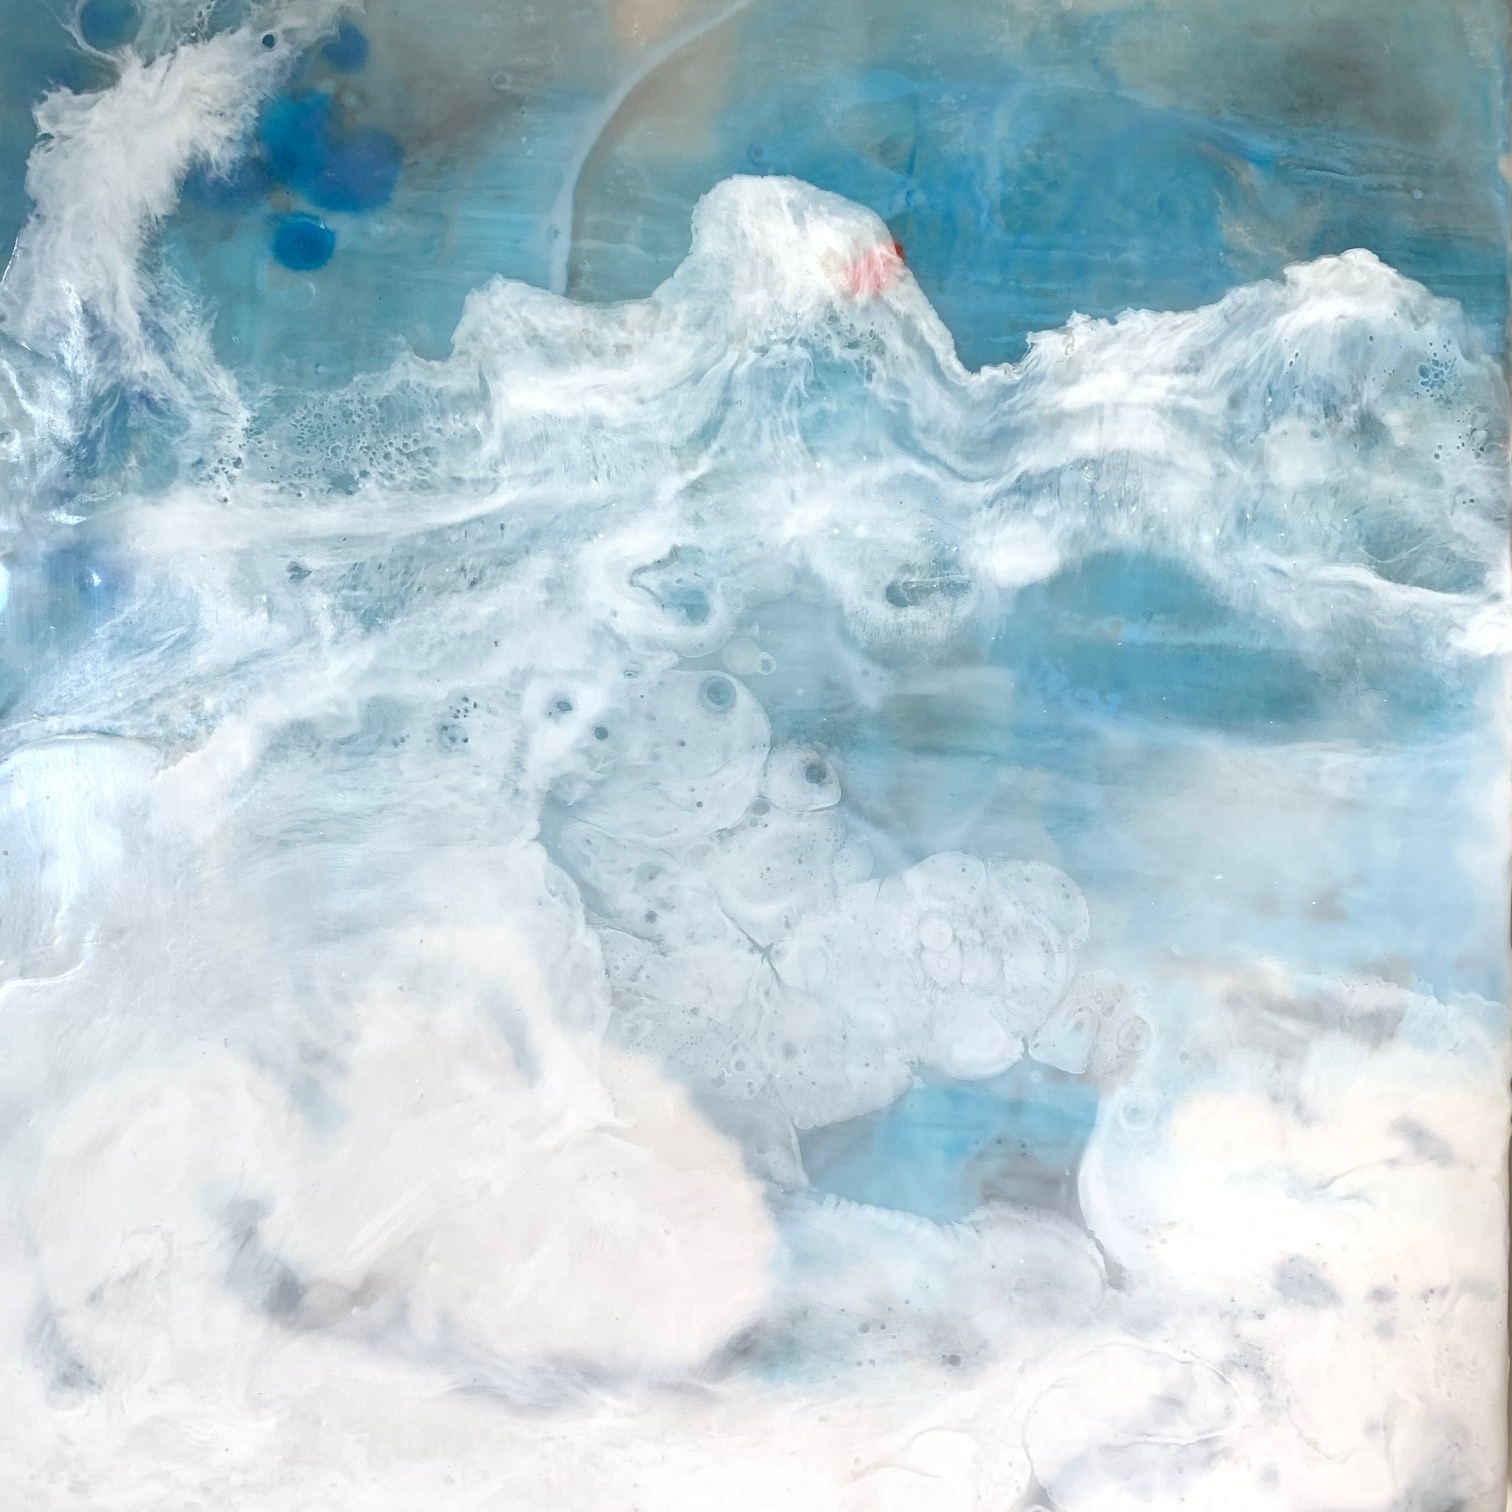 Barbara-Brenner-_Through-the-Sea_-20_x20_-framed-Encaustic-on-birch